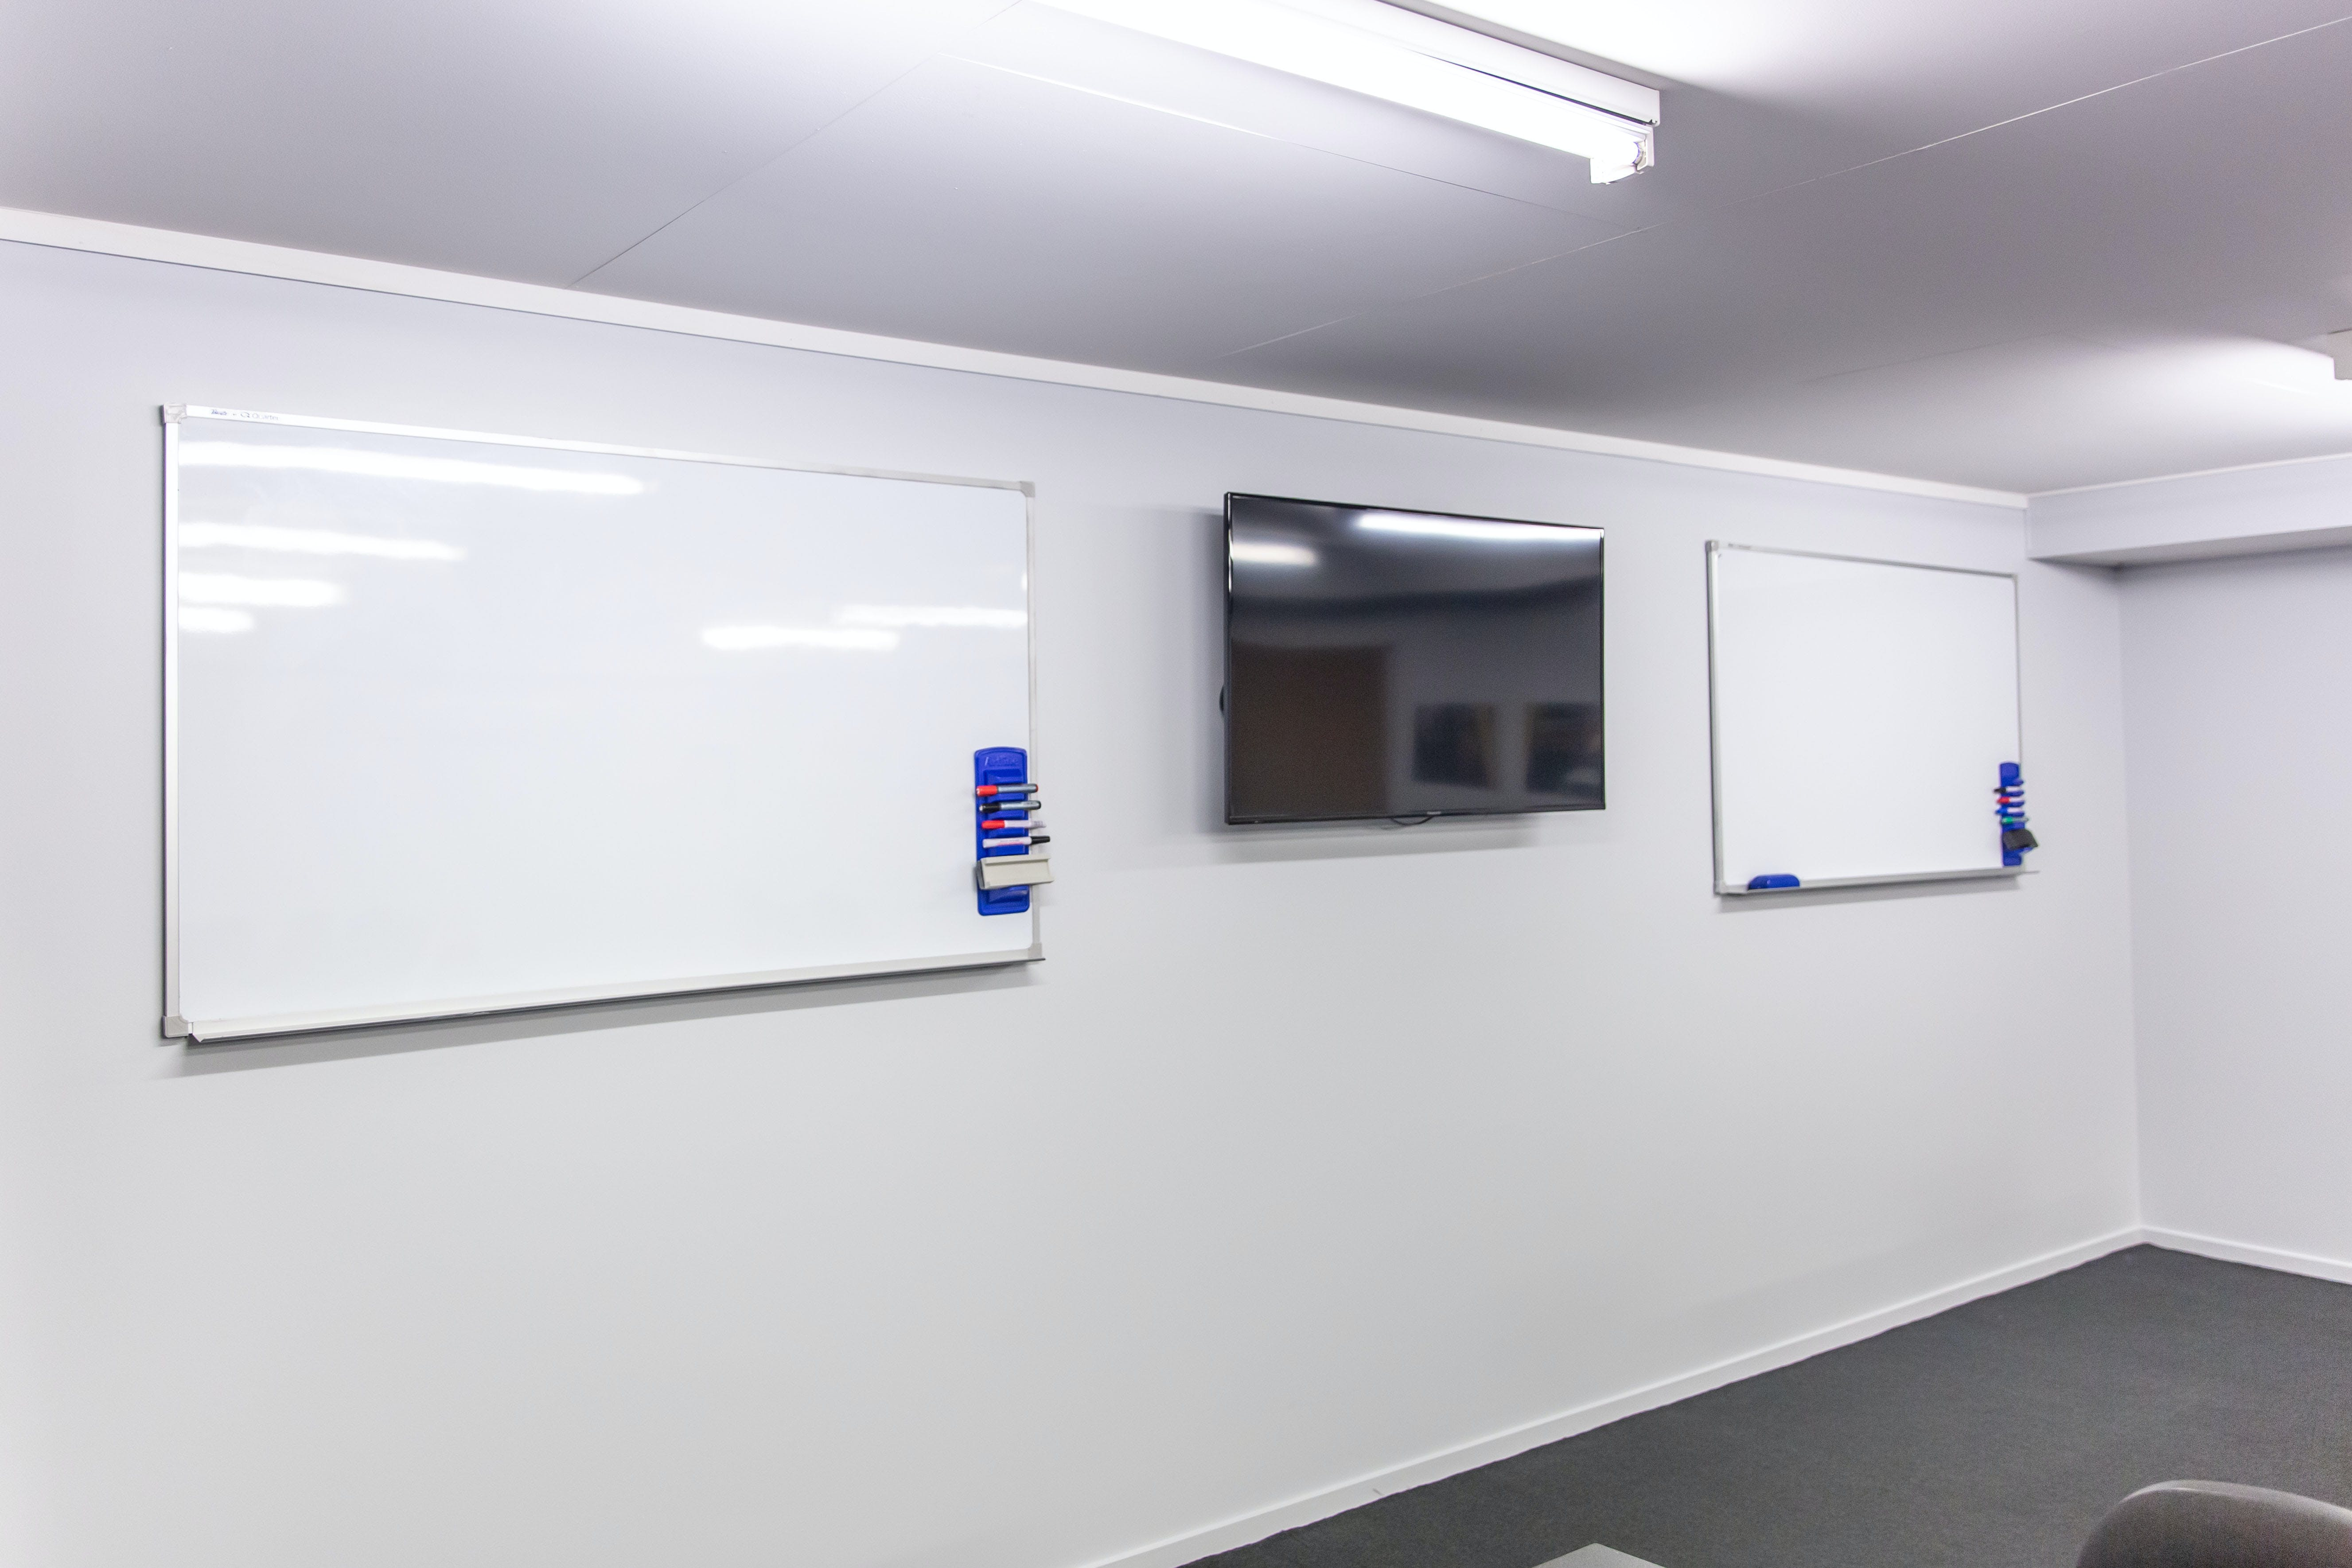 Classroom, training room at Human Performance Centre, image 3